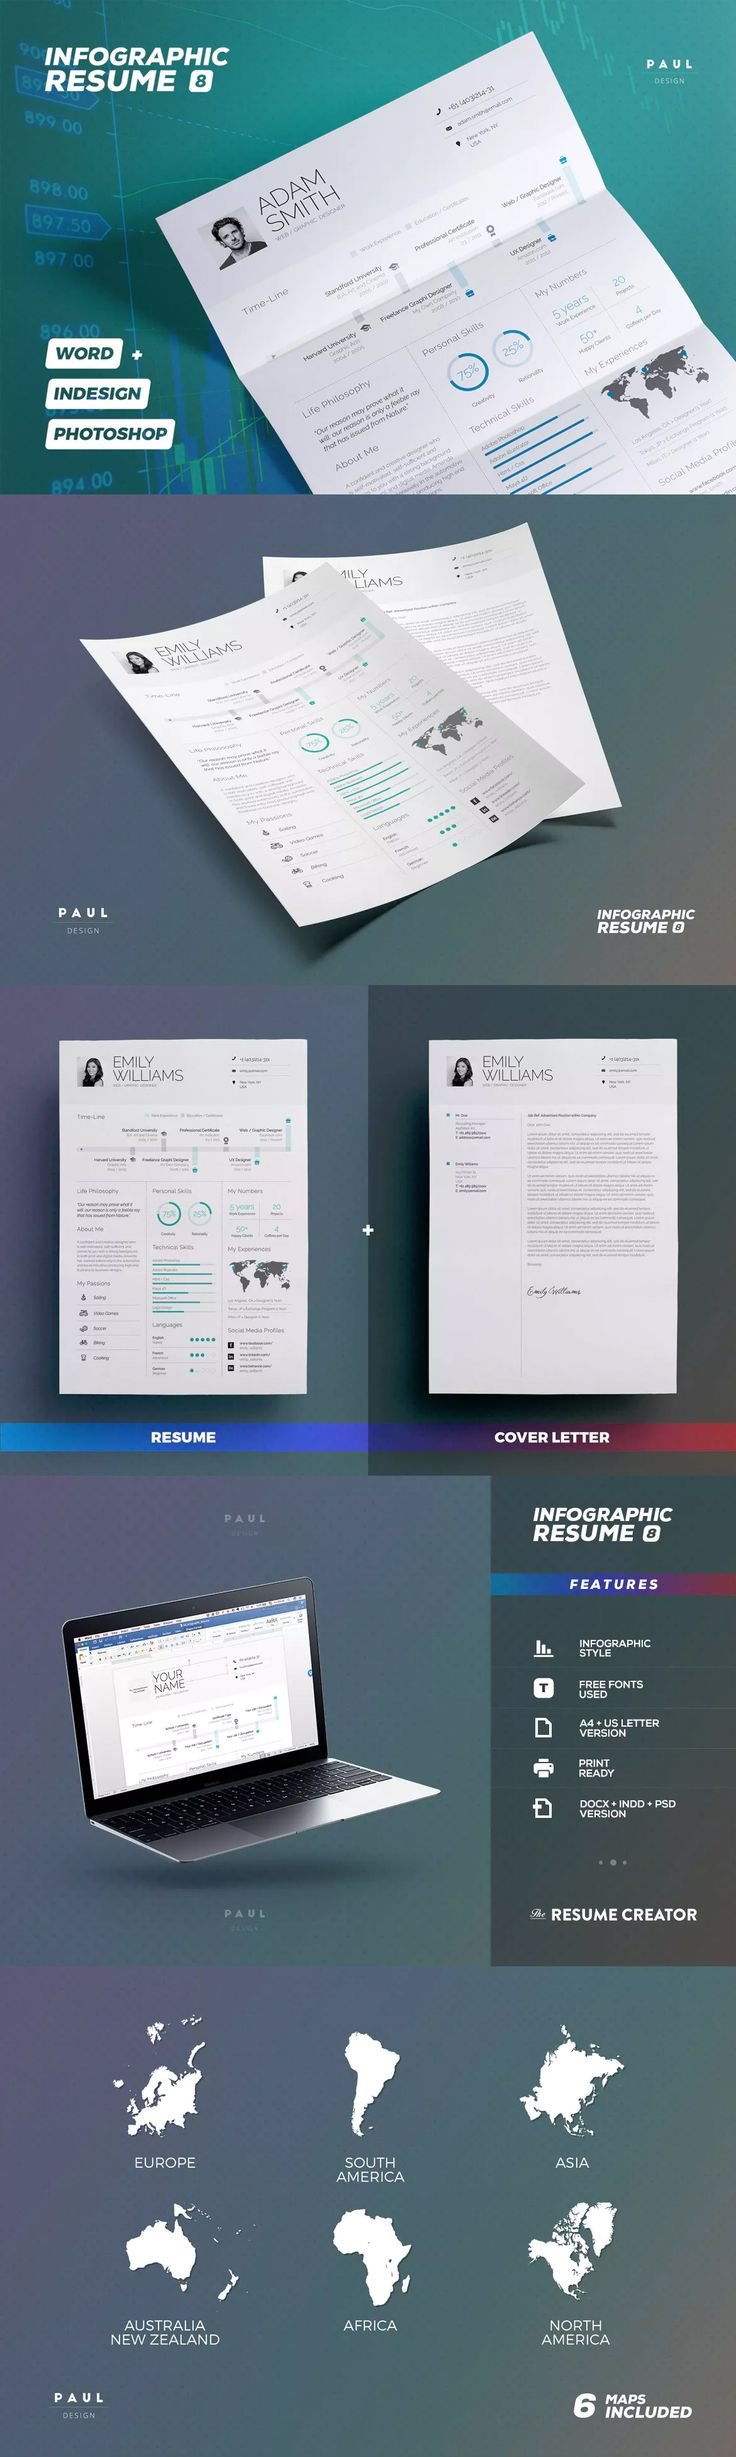 Infographic ResumeCv INDD PSD MS Word A4